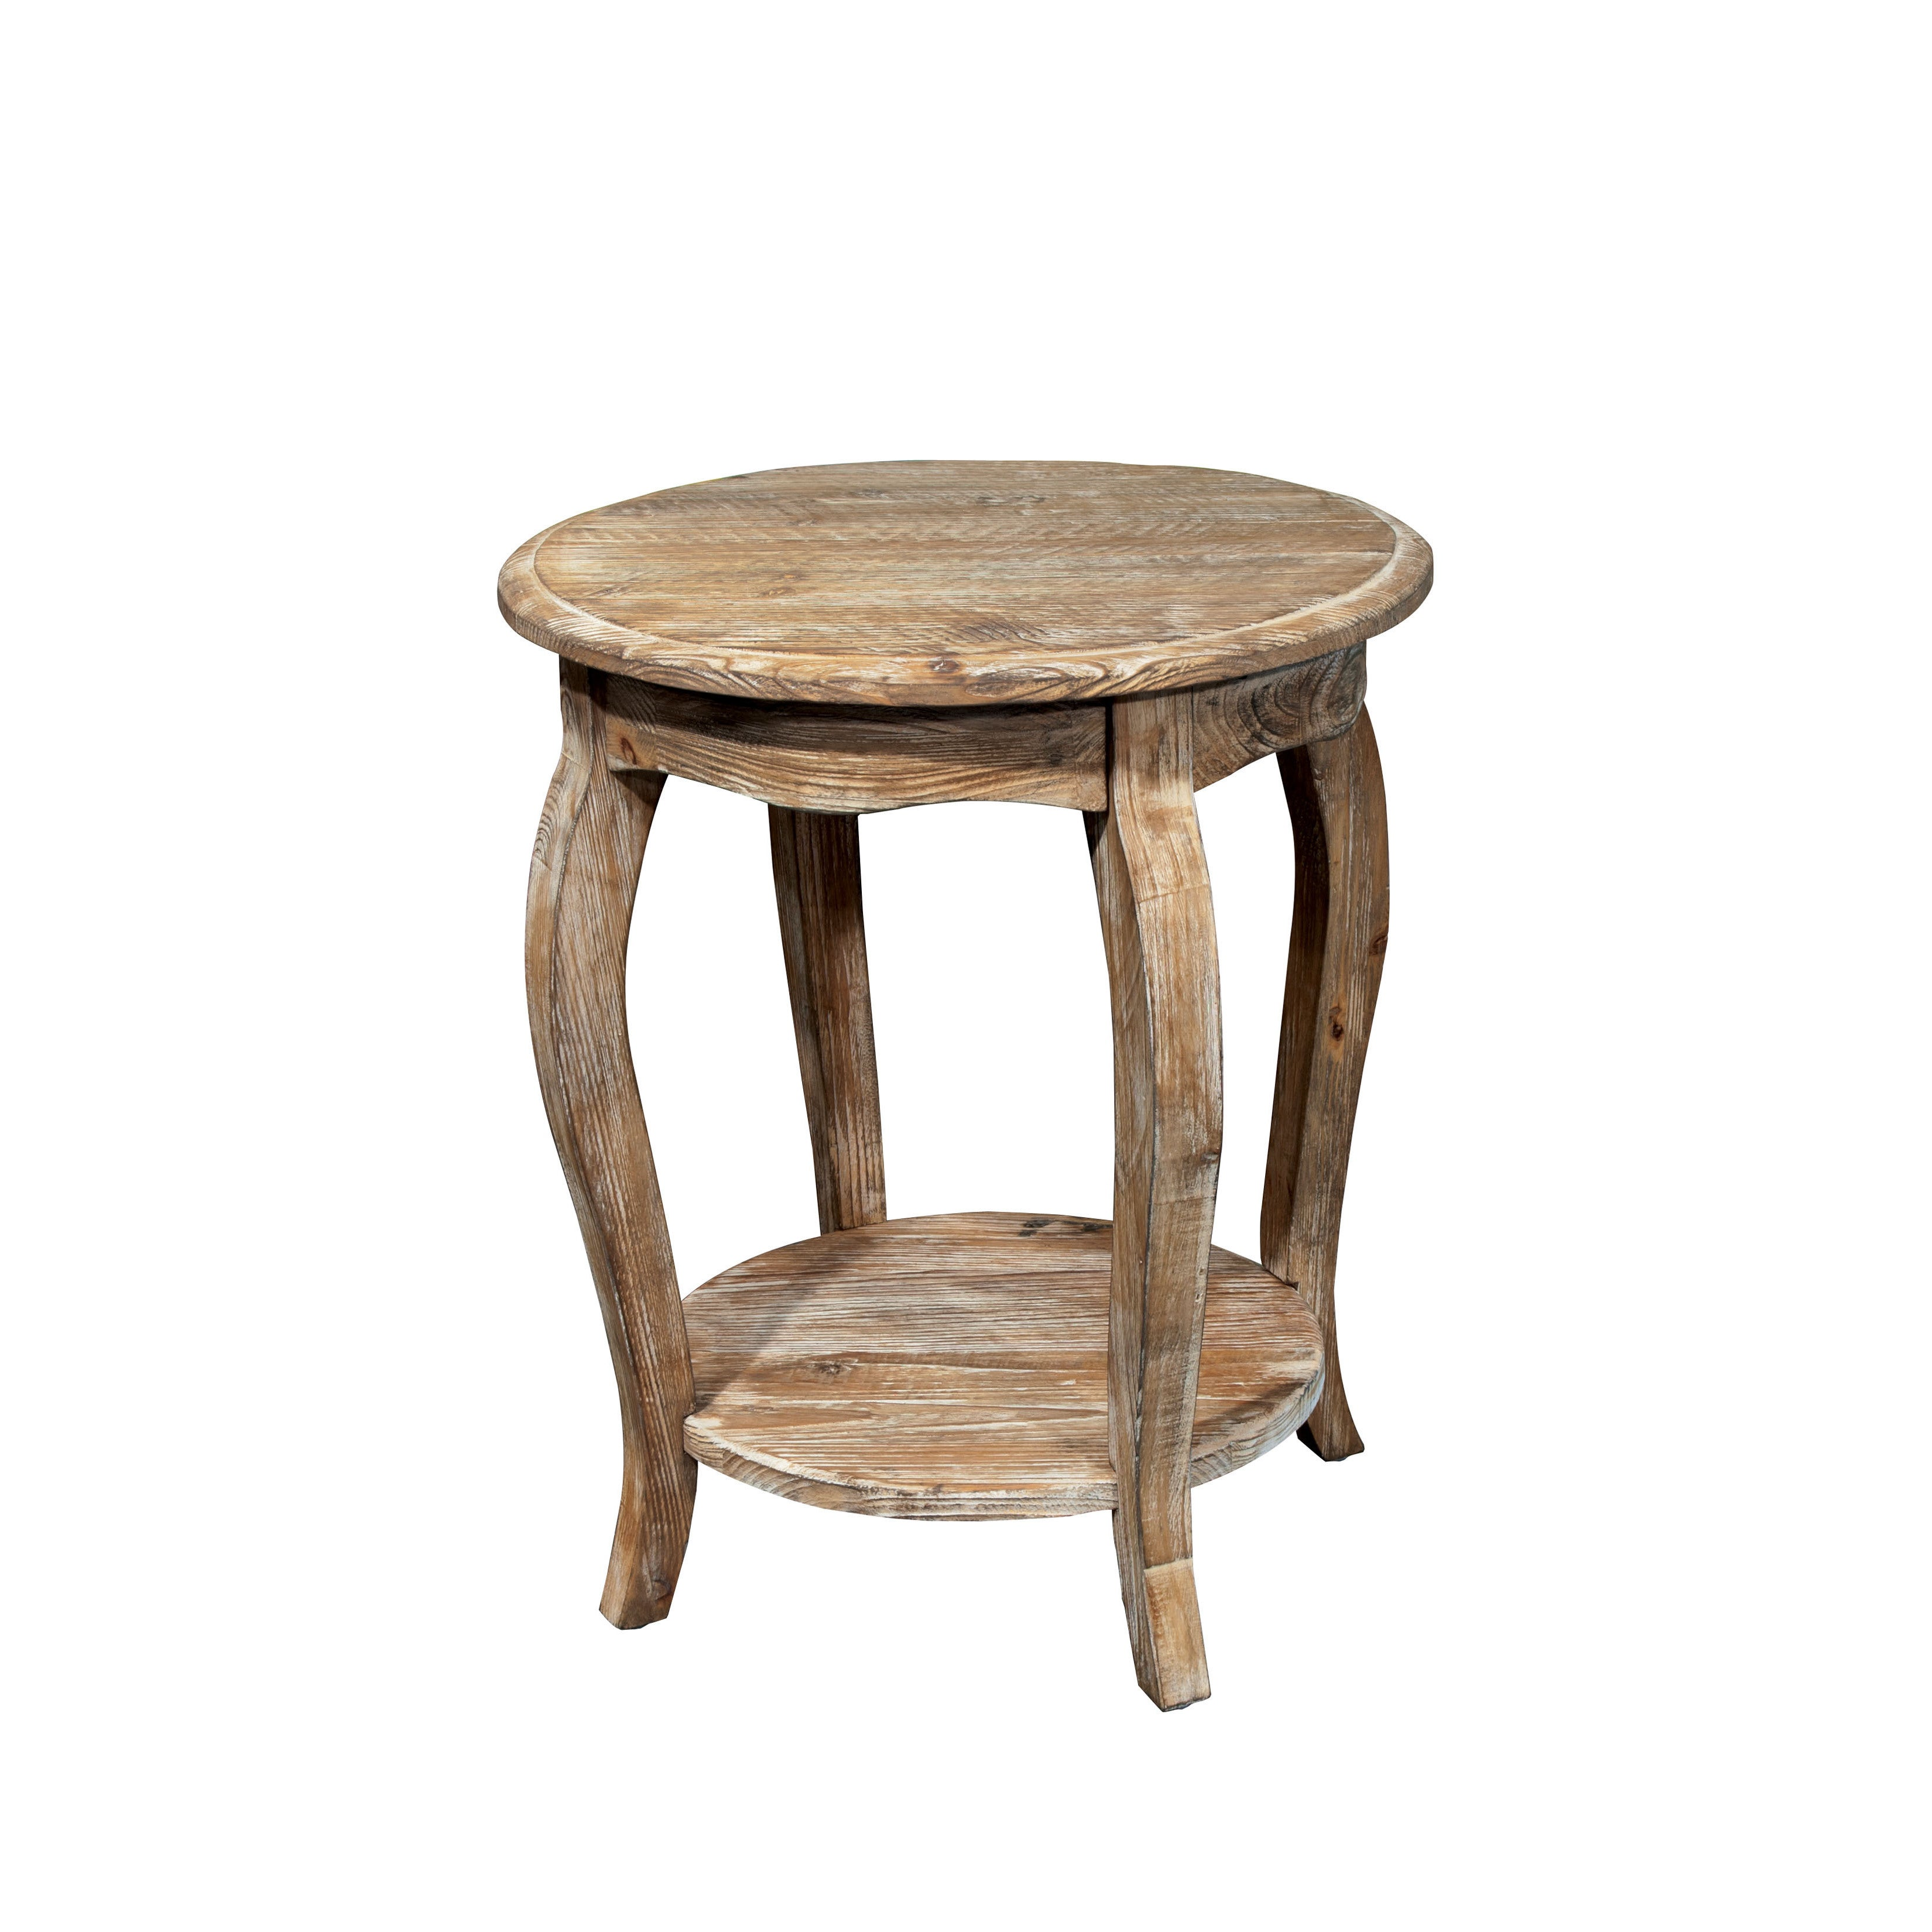 round alaterre garden free table shipping home today product rustic end overstock reclaimed tables